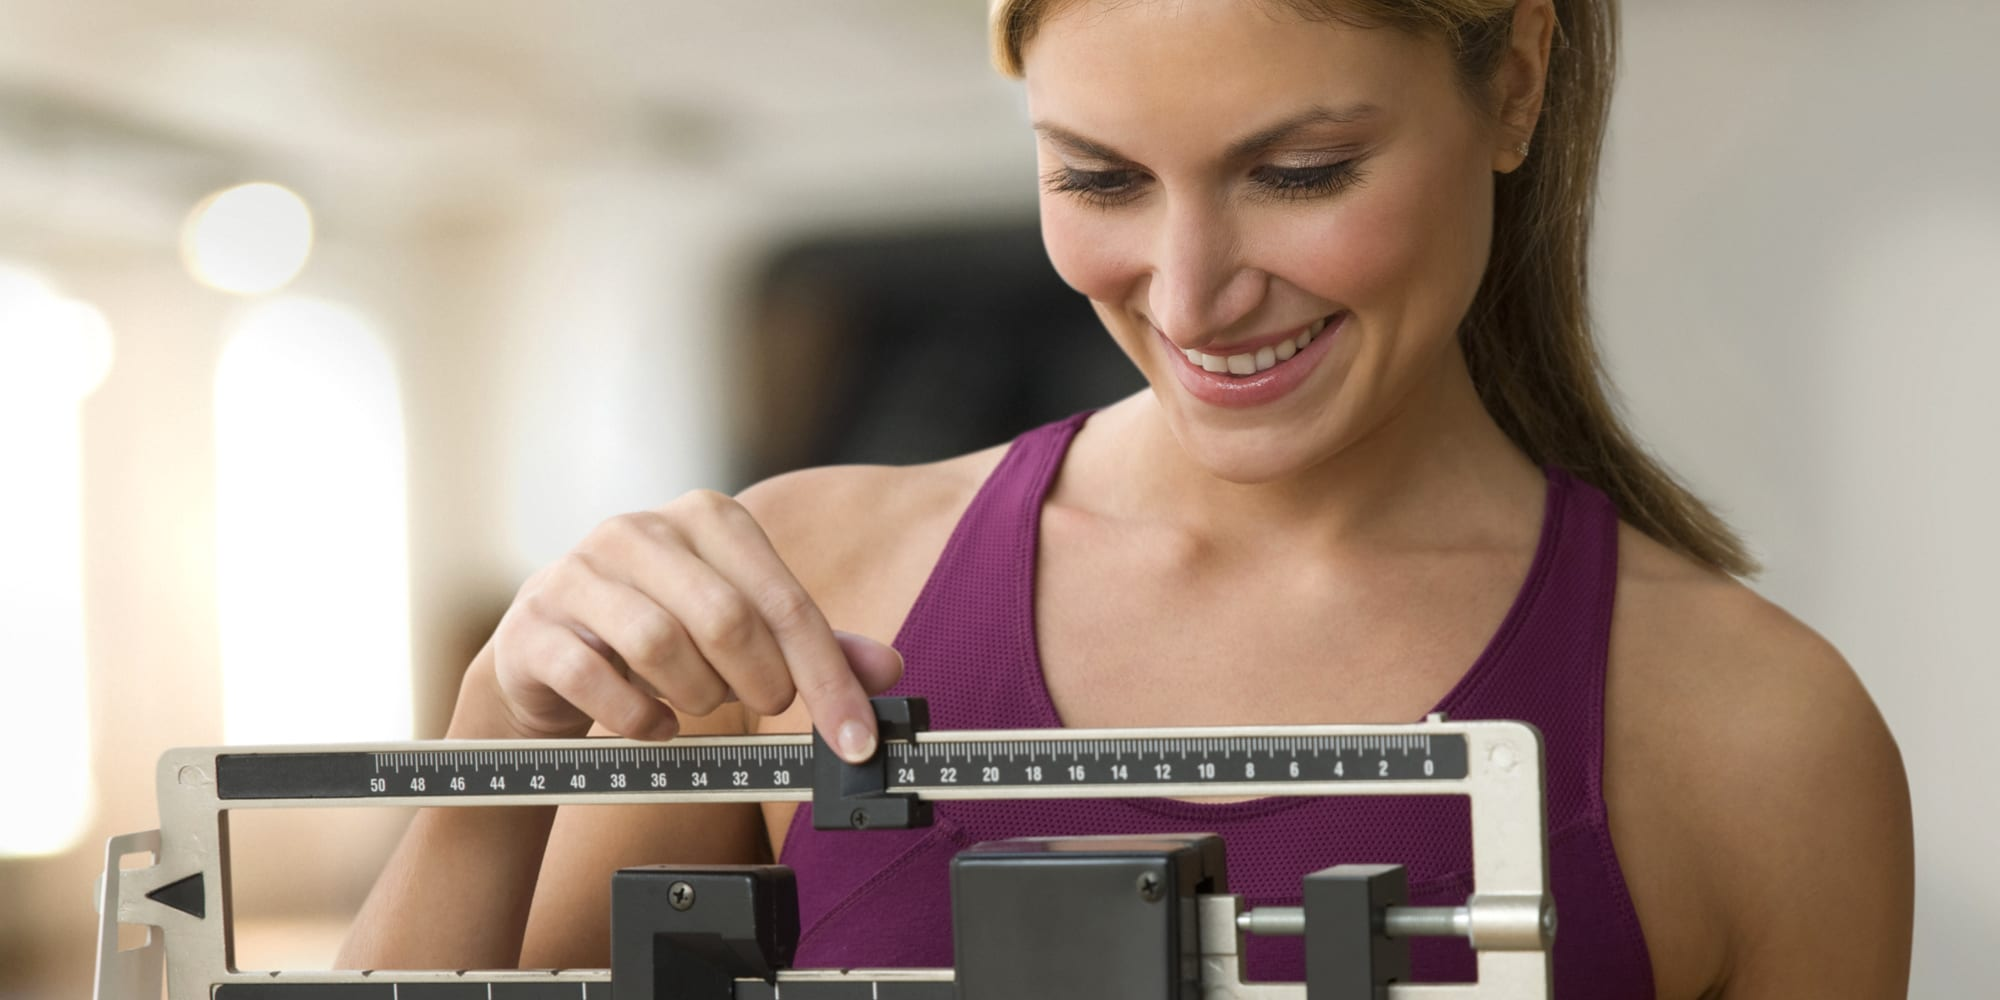 How Many Calories Does It Take to Lose a Pound?